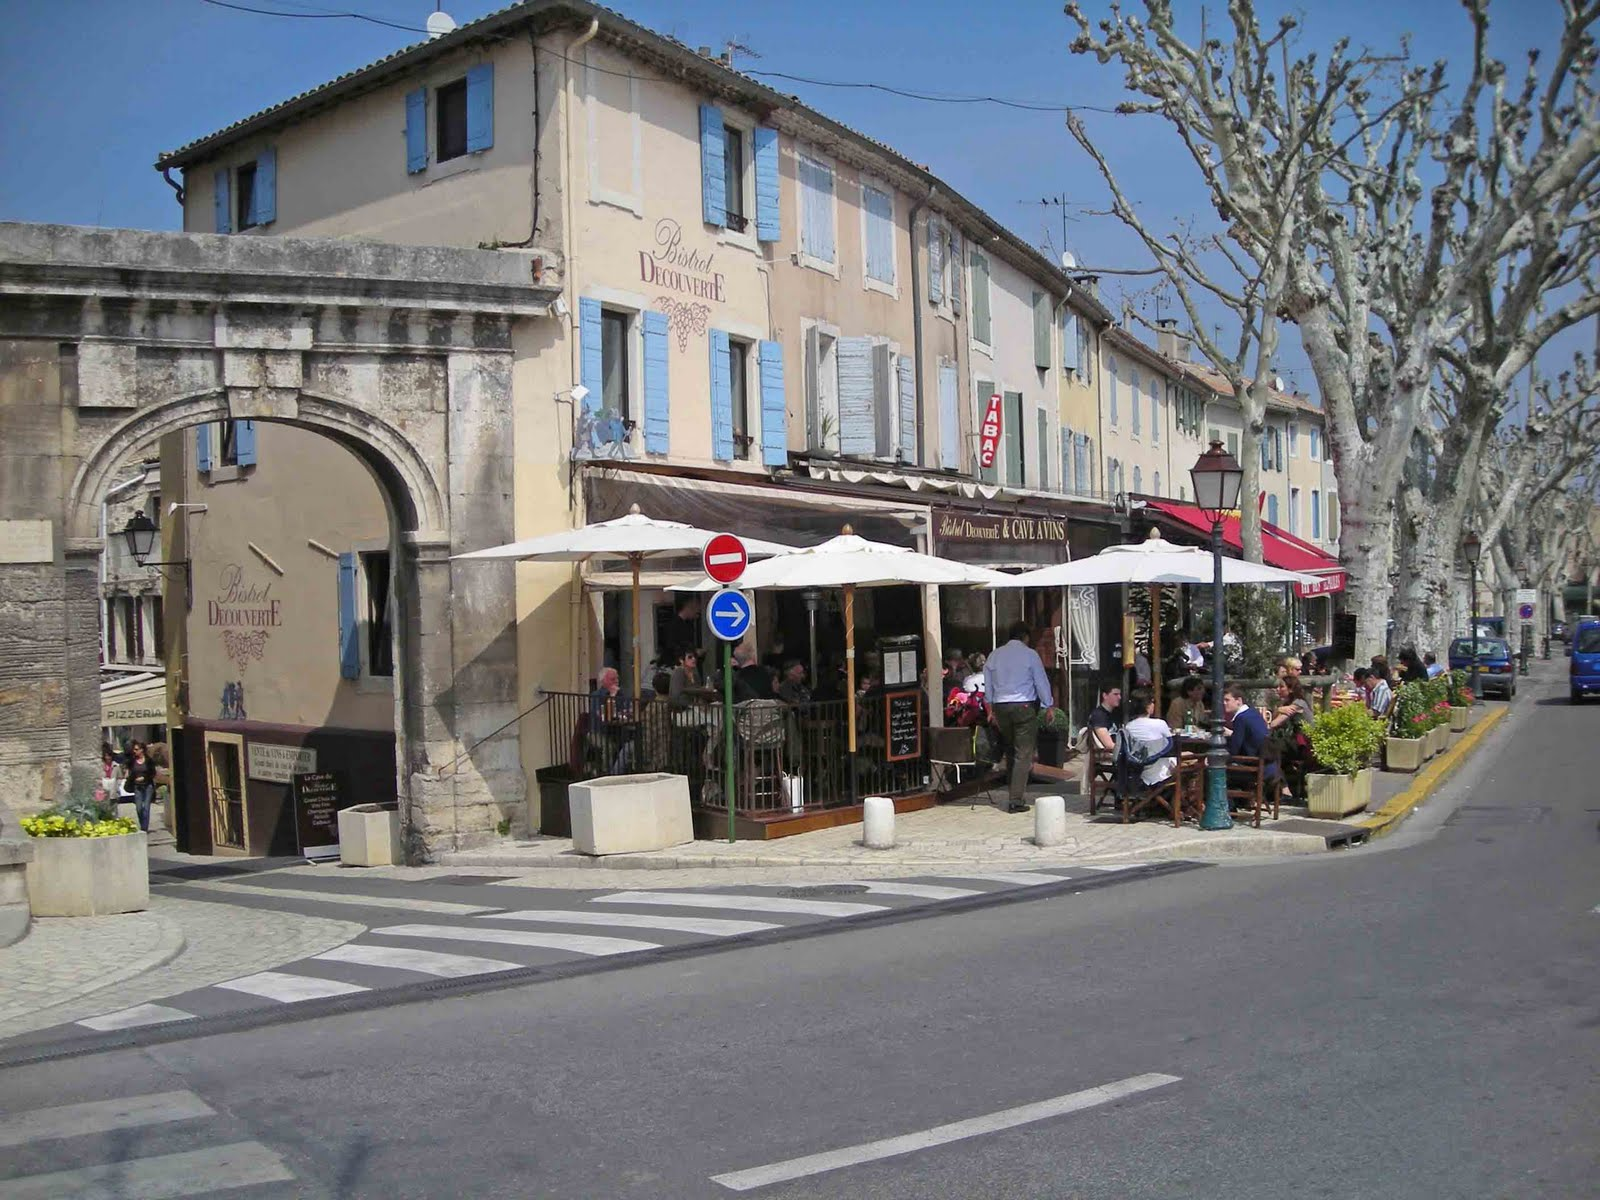 St Remy Saint Remy De Provence France Pictures And Videos And News